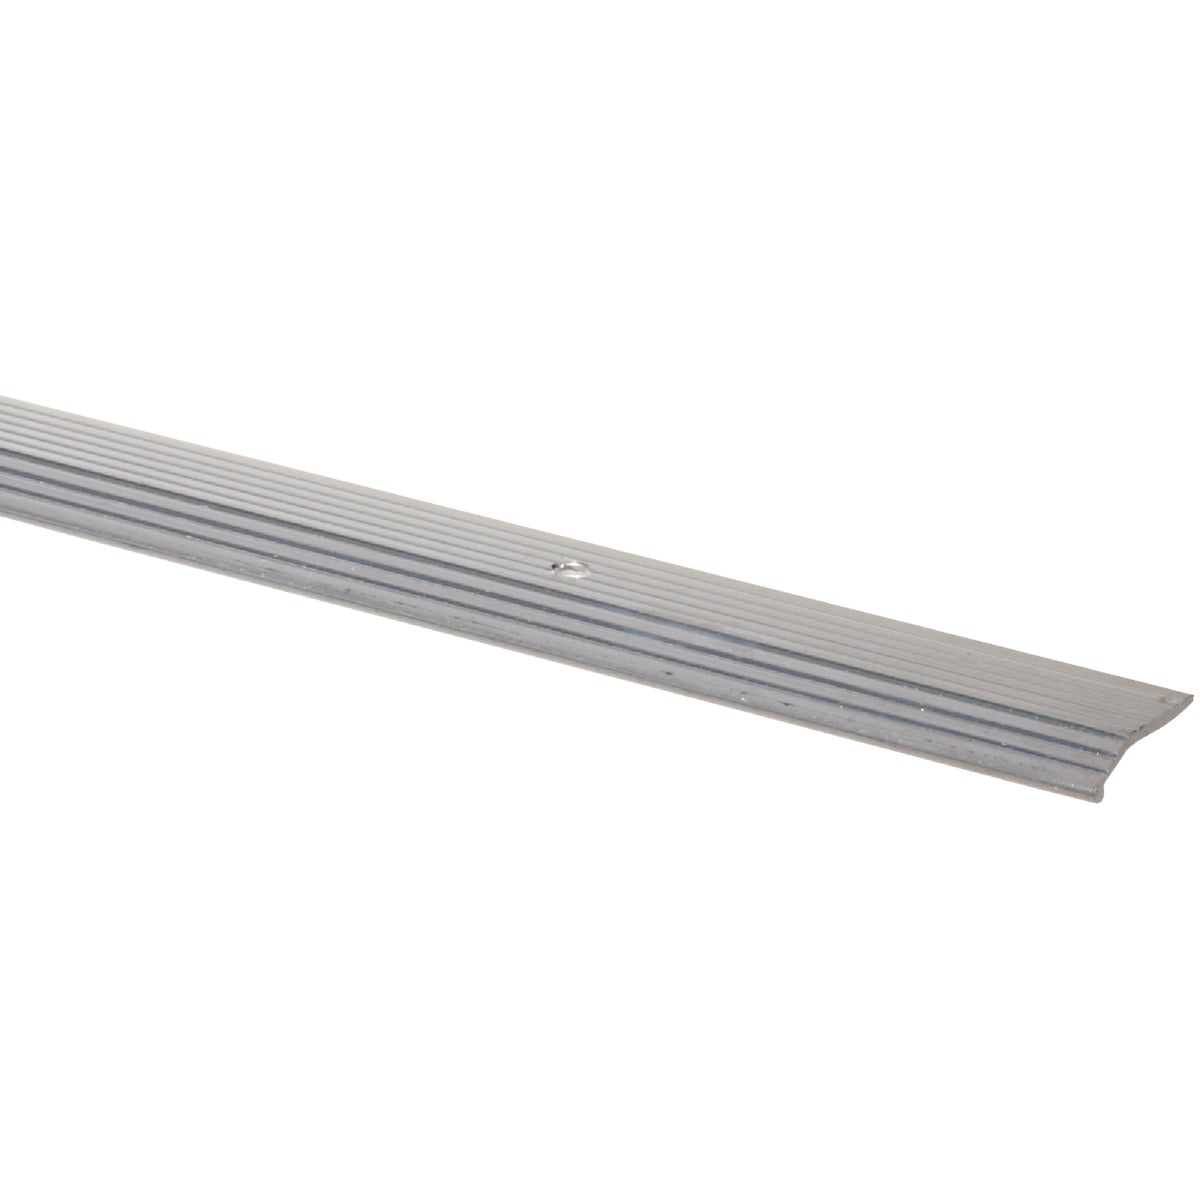 "7/8""X6' SLVR BINDER BAR - 78089 by M D Building Prod"